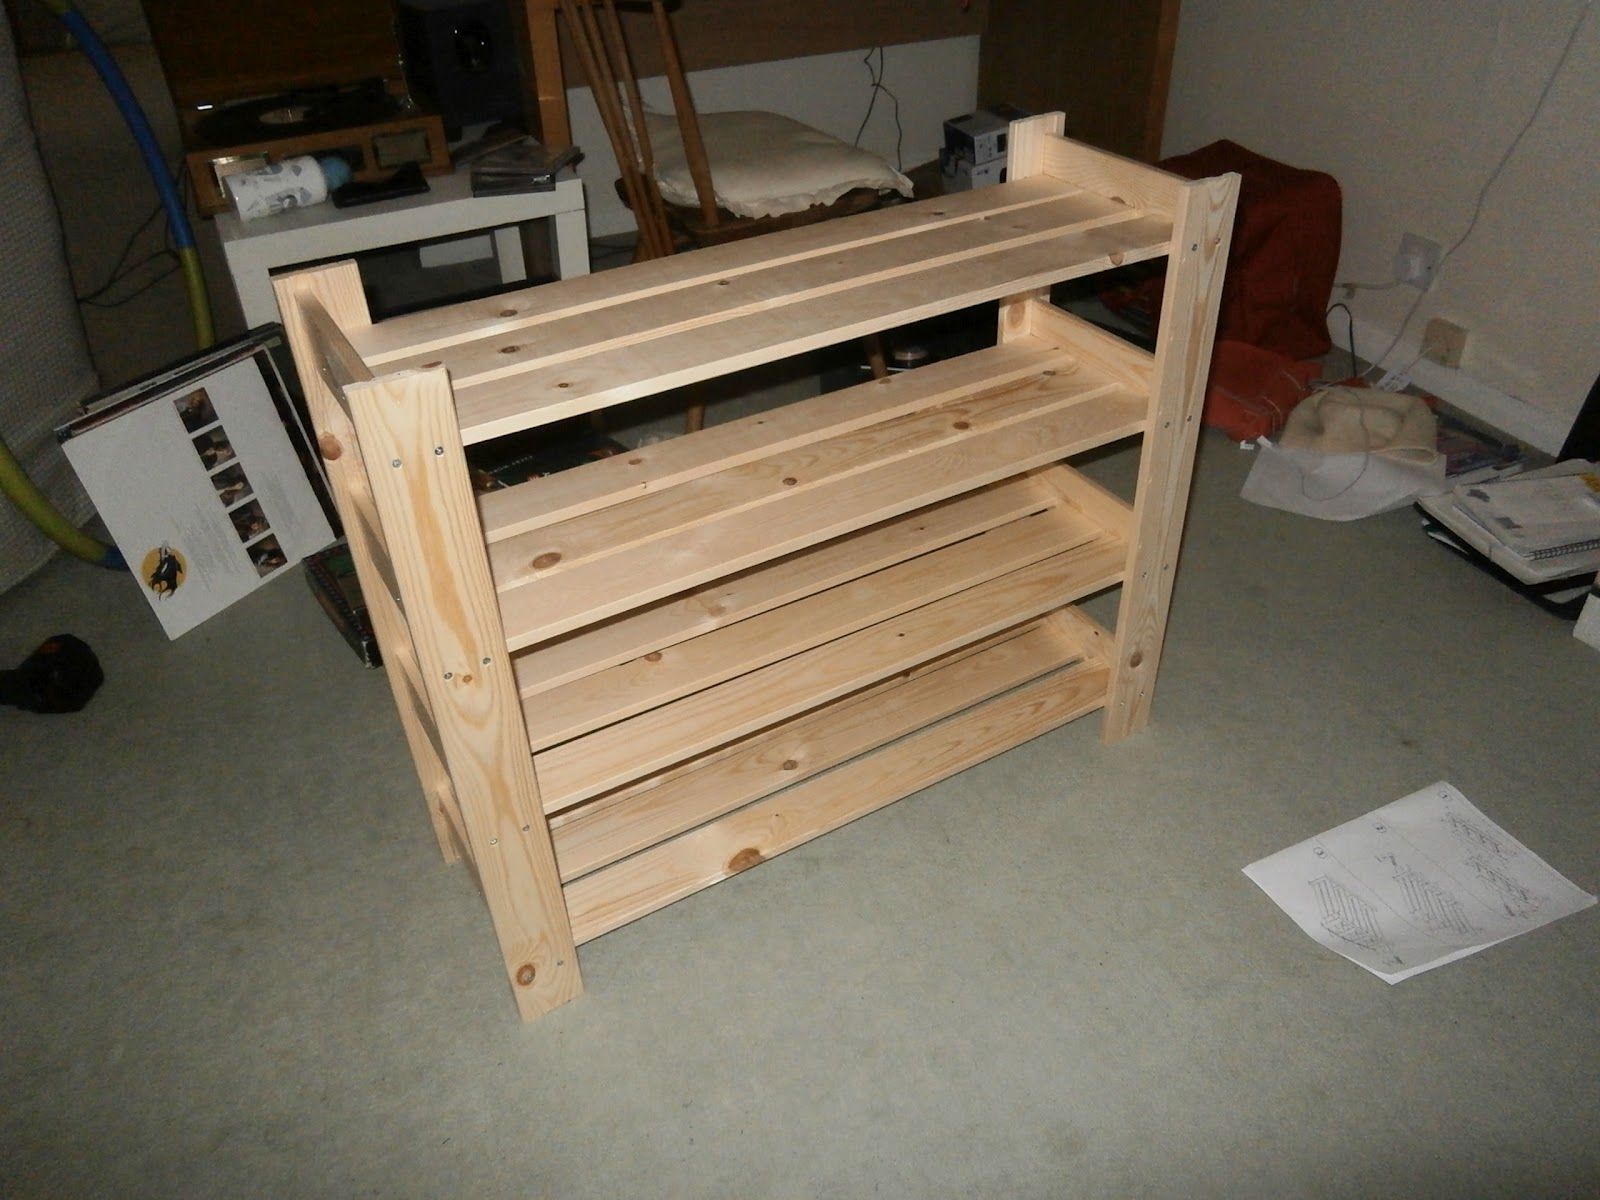 easy build woodworking project